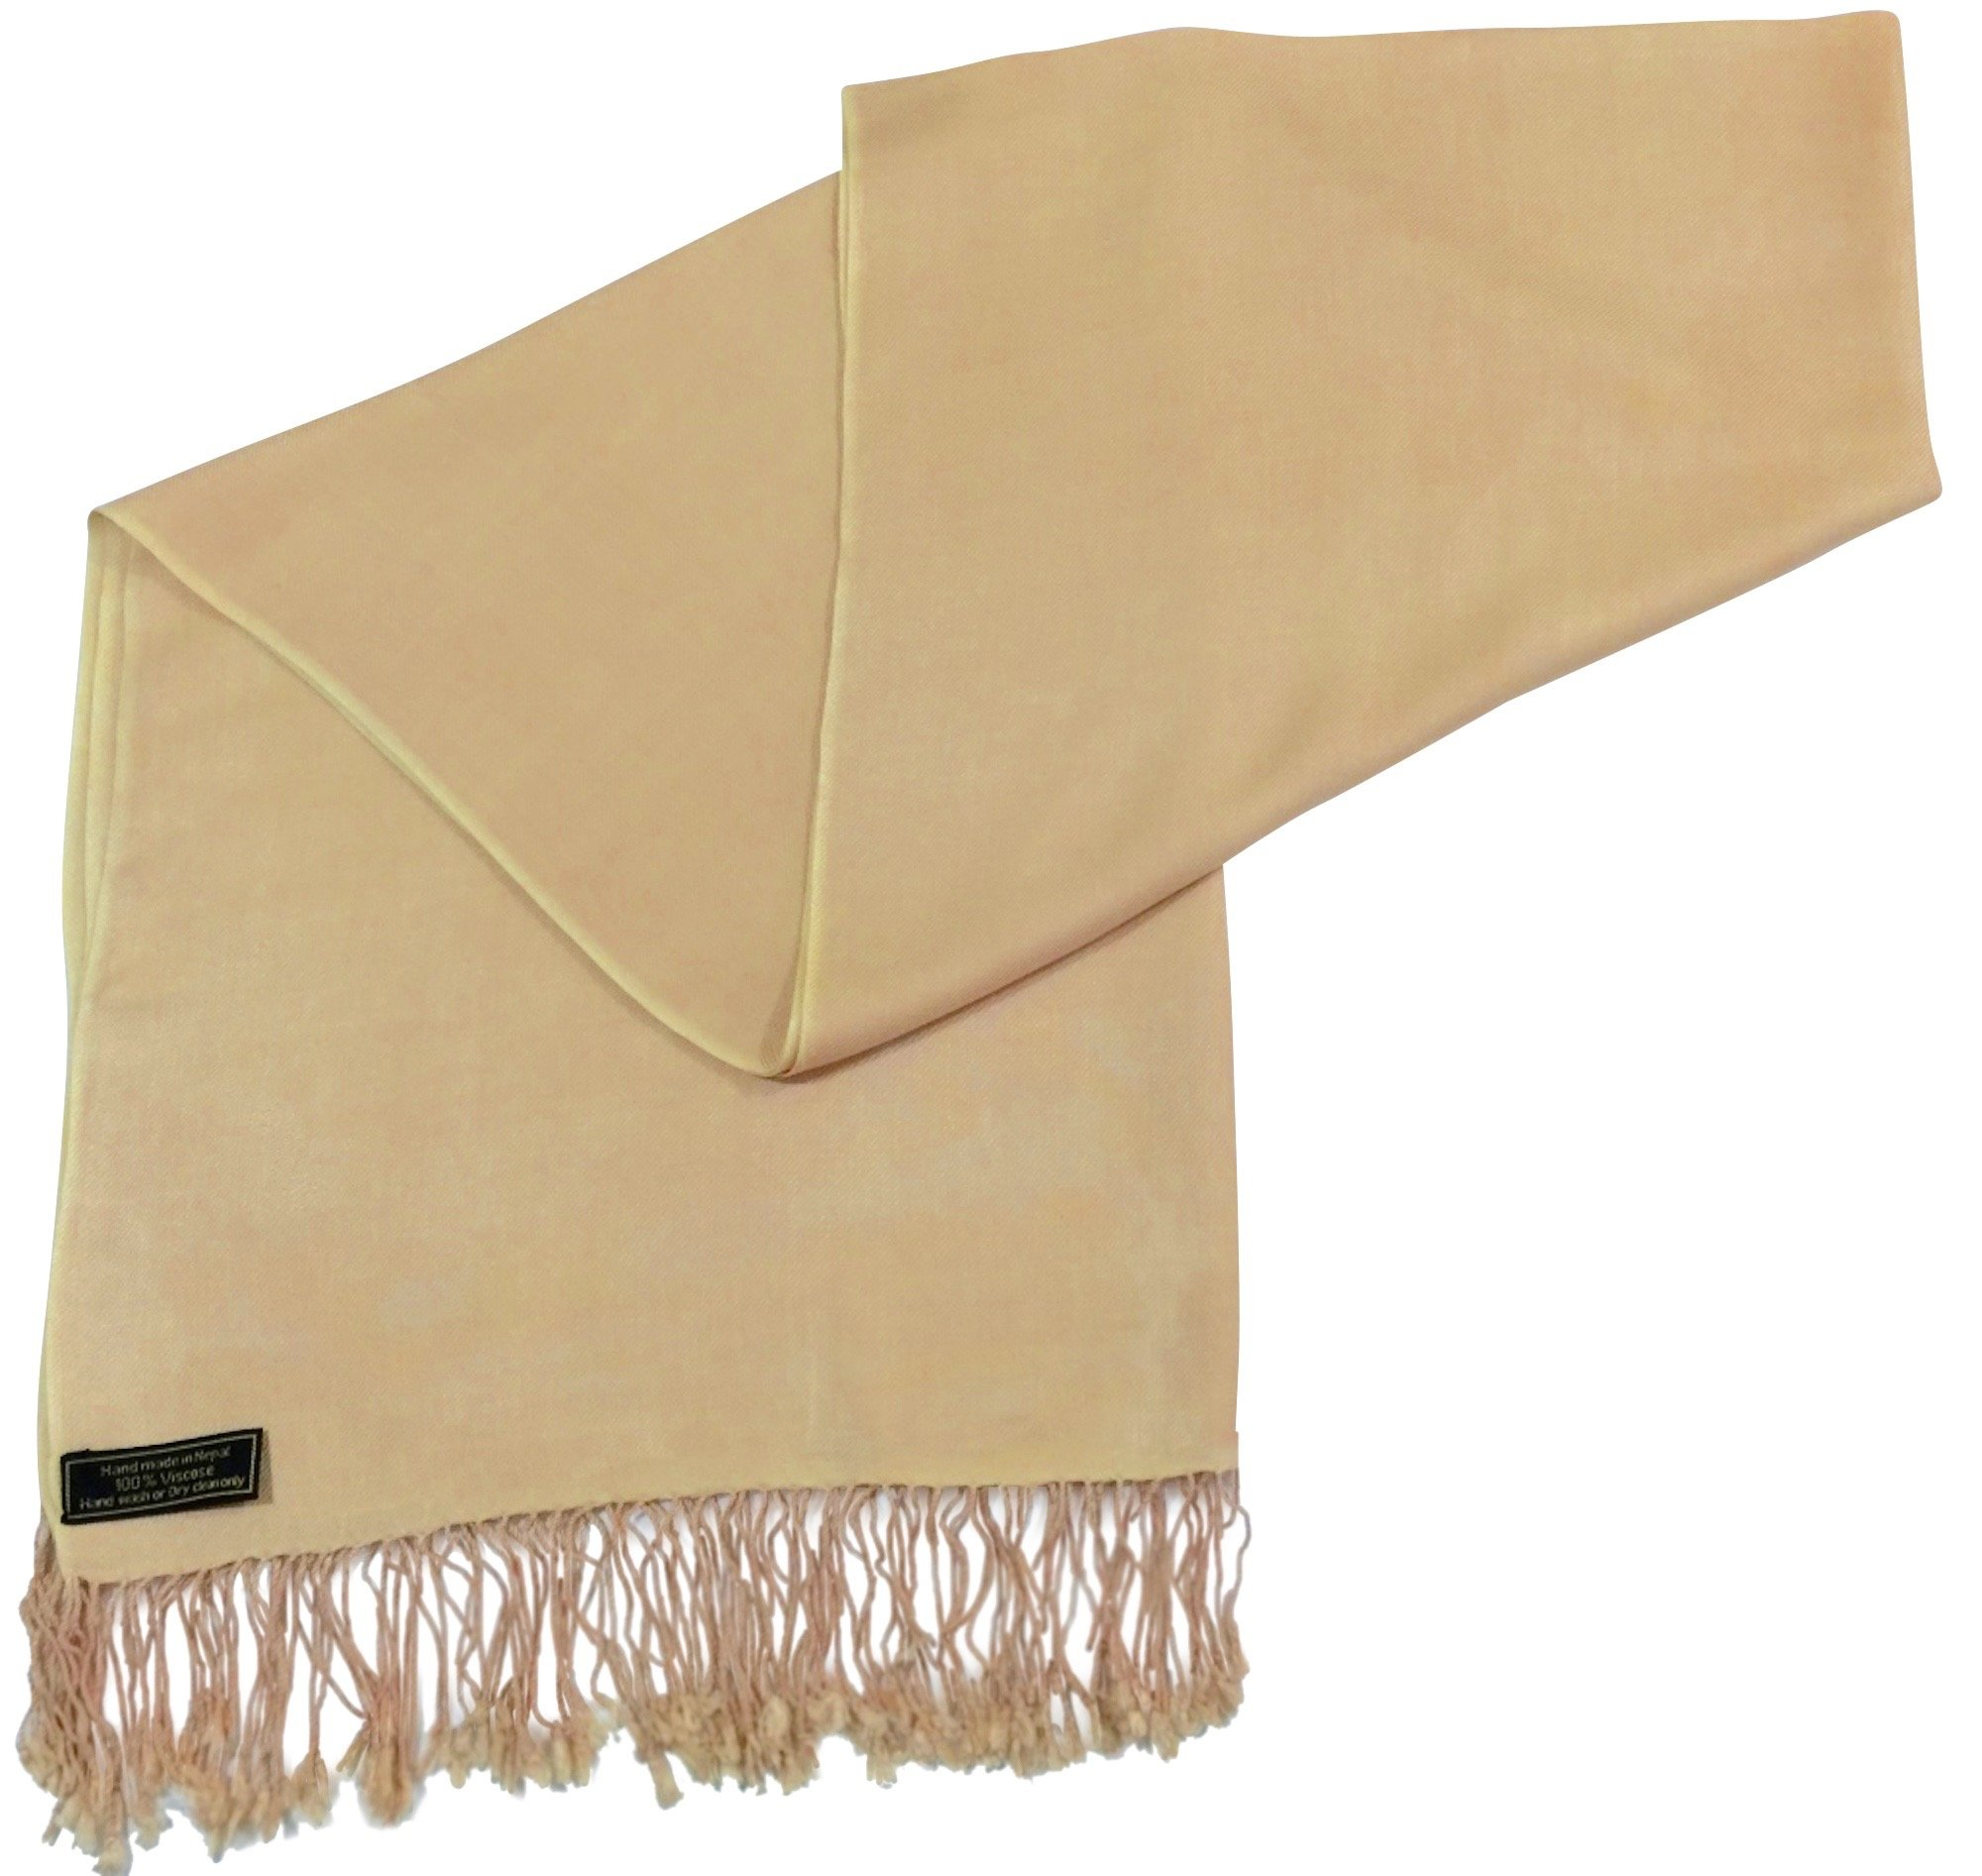 Champagne Solid Color Design Nepalese Shawl Scarf Wrap Pashminas CJ Apparel NEW